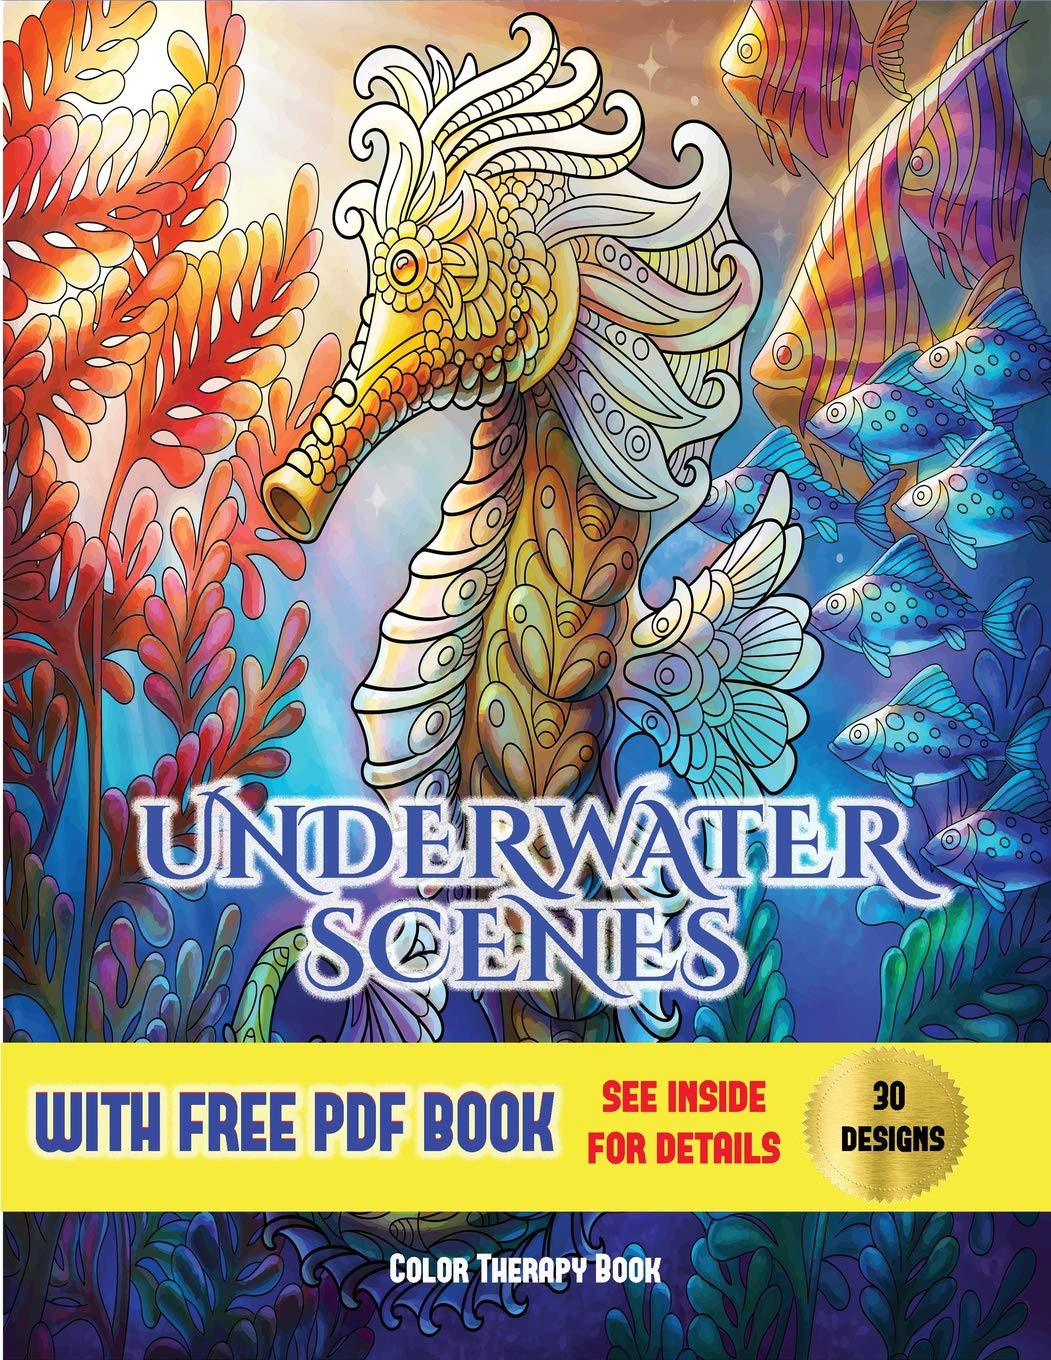 - Amazon.com: Color Therapy Book (Underwater Scenes): An Adult